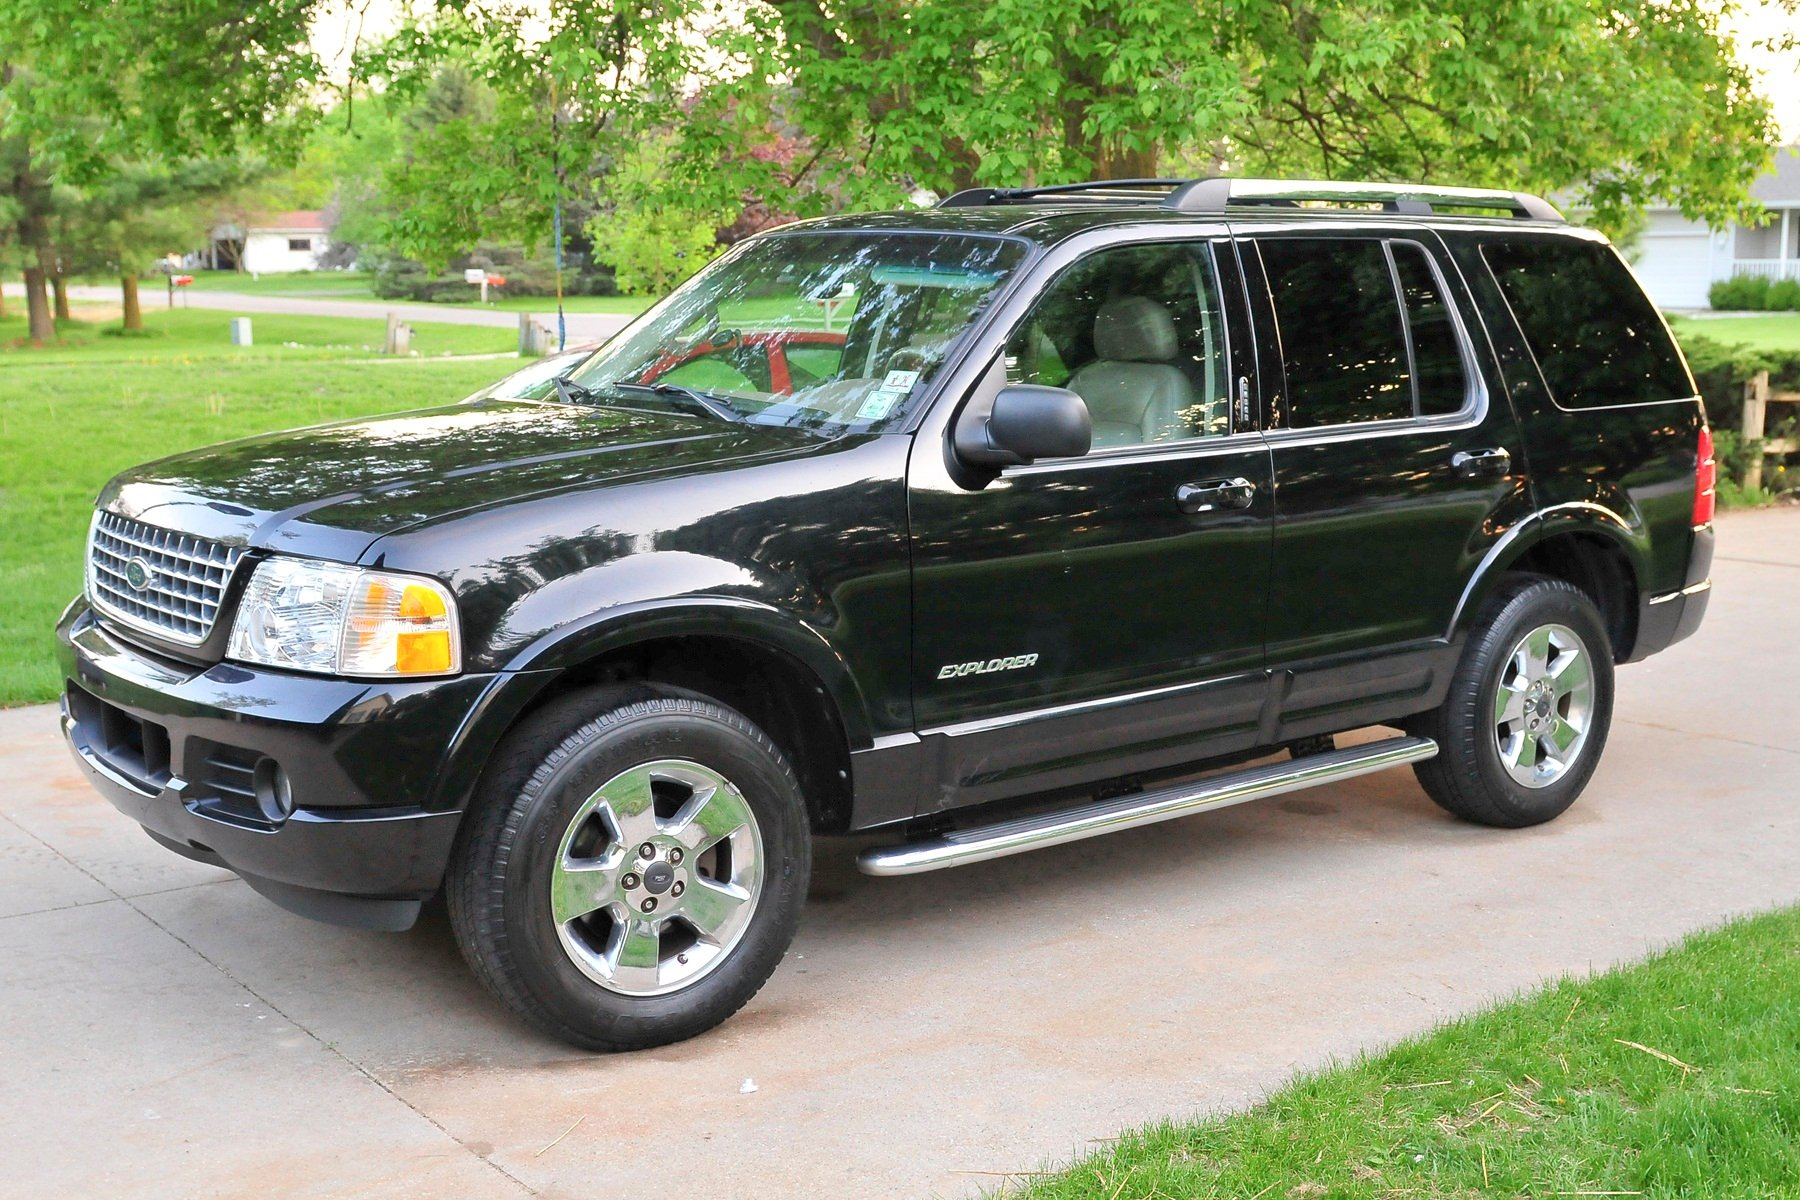 Black Ford Explorer the two are believed to be in.  MI License Plate BCQ 4820